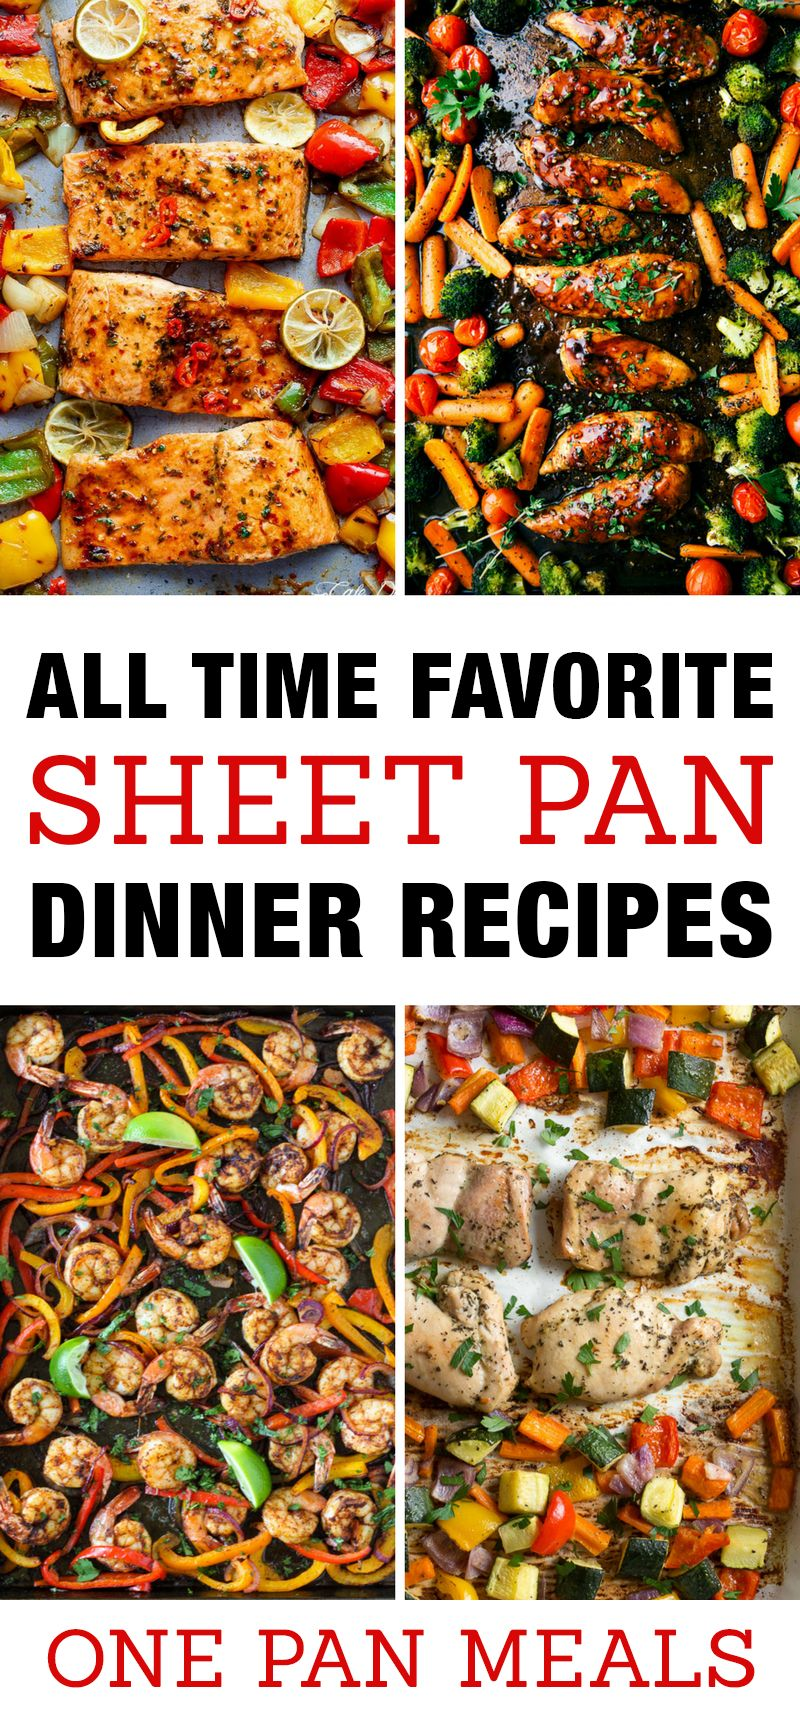 Best Sheet Pan Dinner Recipes For Quick Family Meals One Chicken Seafood